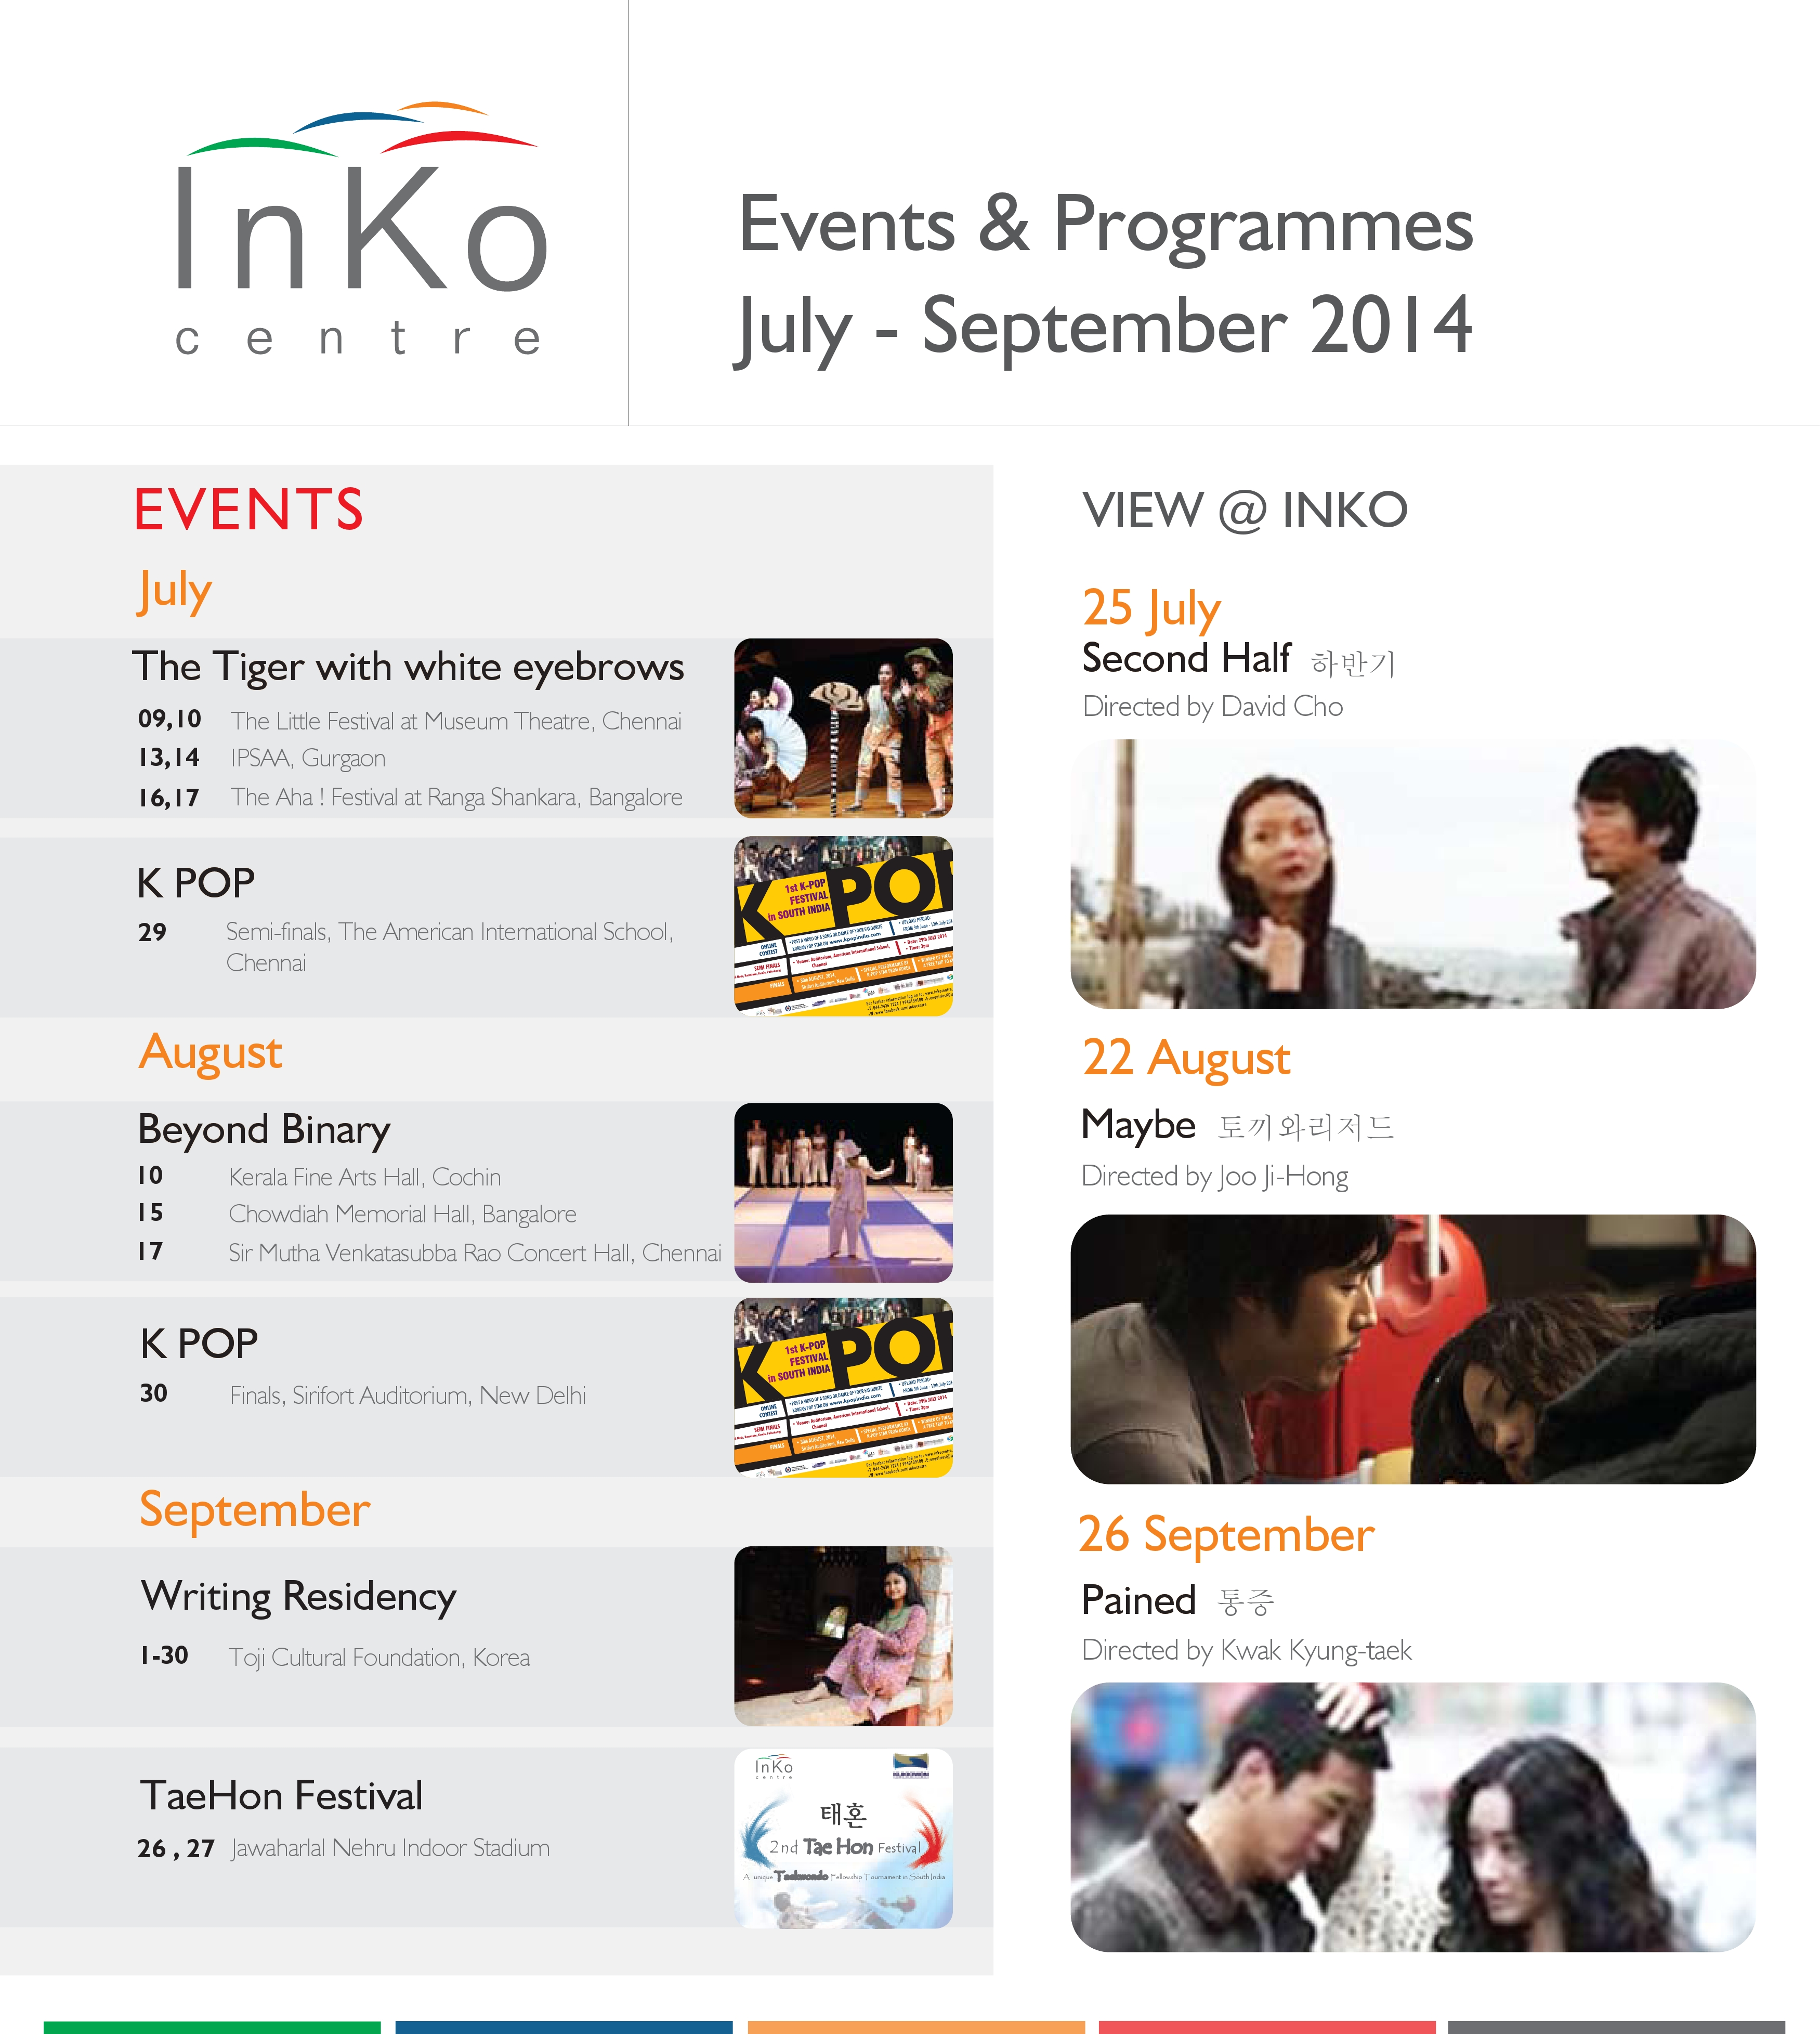 Events & Programmes July - September 2014